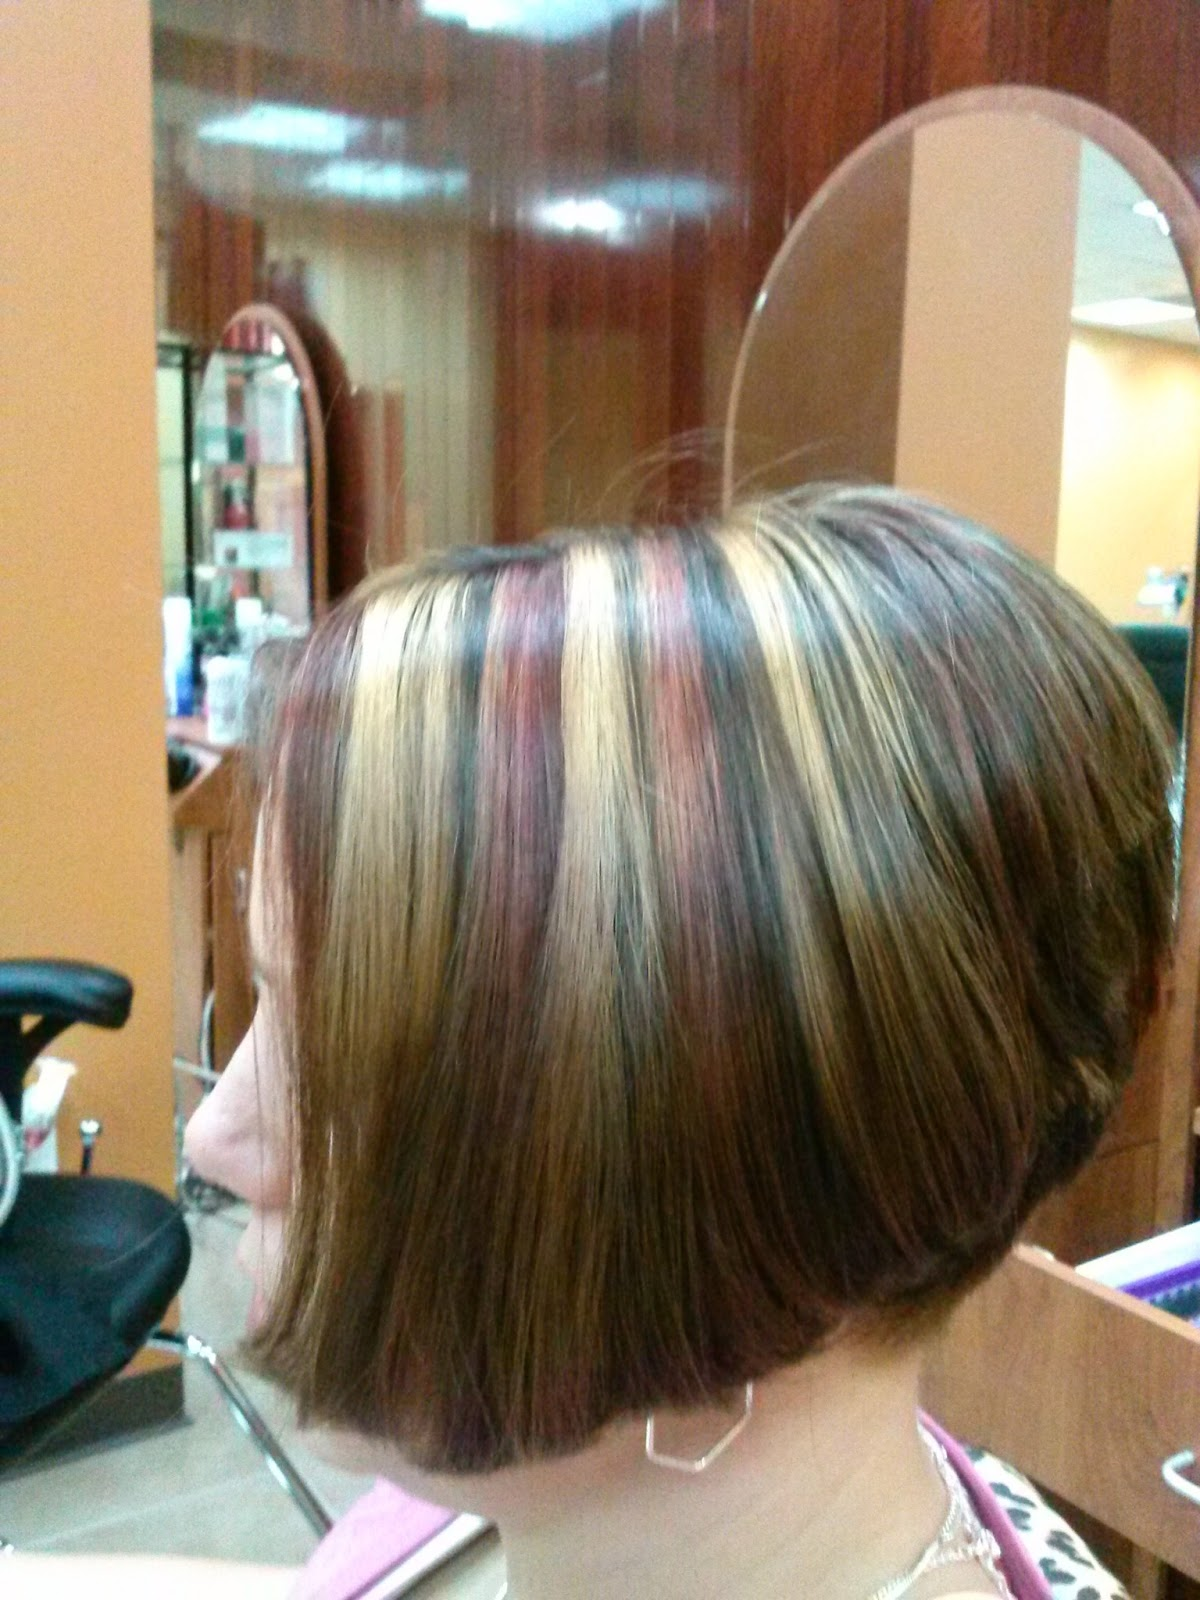 Sunflower Beauty Salon Hair Cut Style And Color In Your Friendly